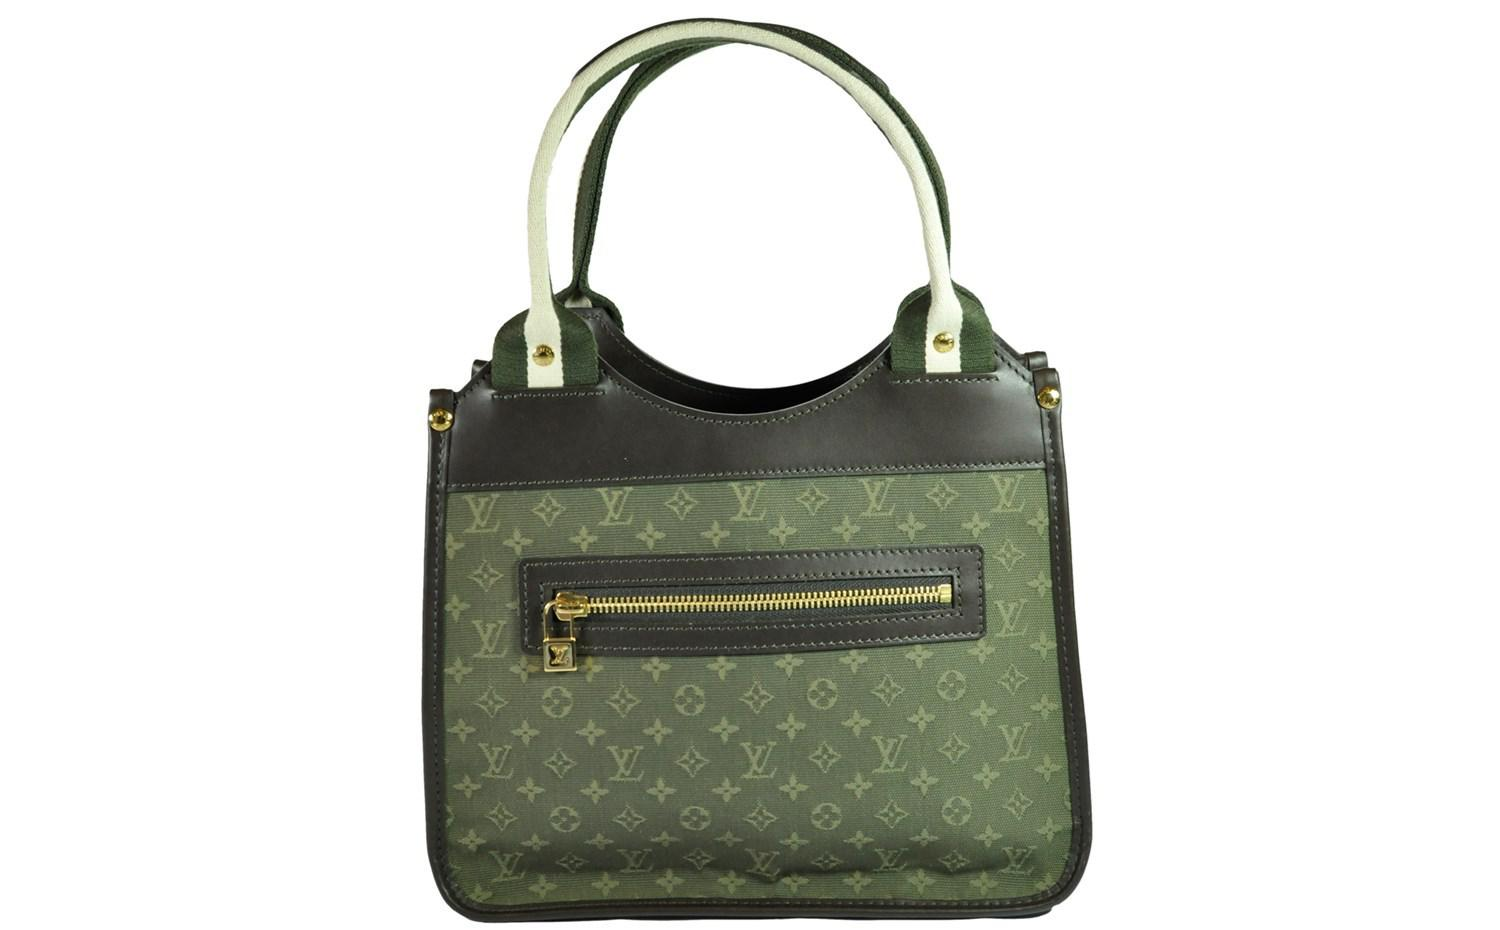 2f6464be7 Louis Vuitton Mini Lin Sac Kathleen In Khaki in Green - Lyst